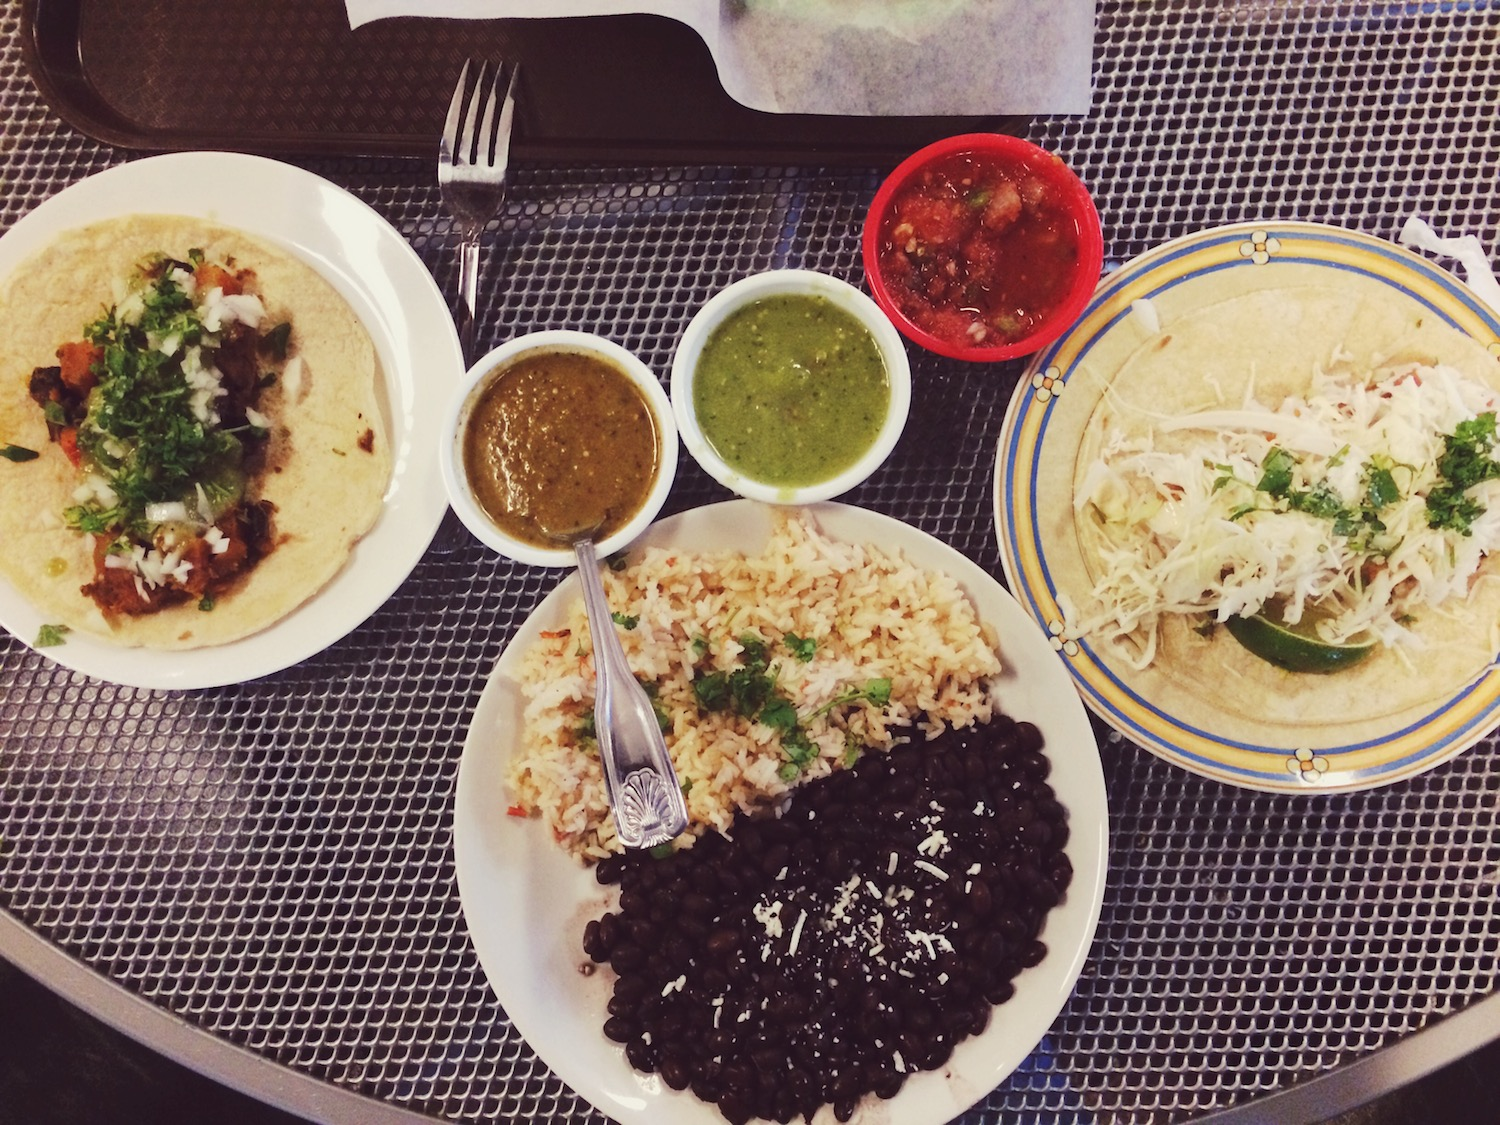 Mama Jeri and I shared a huge helping of tacos and rice and beans from Woody's Tacos